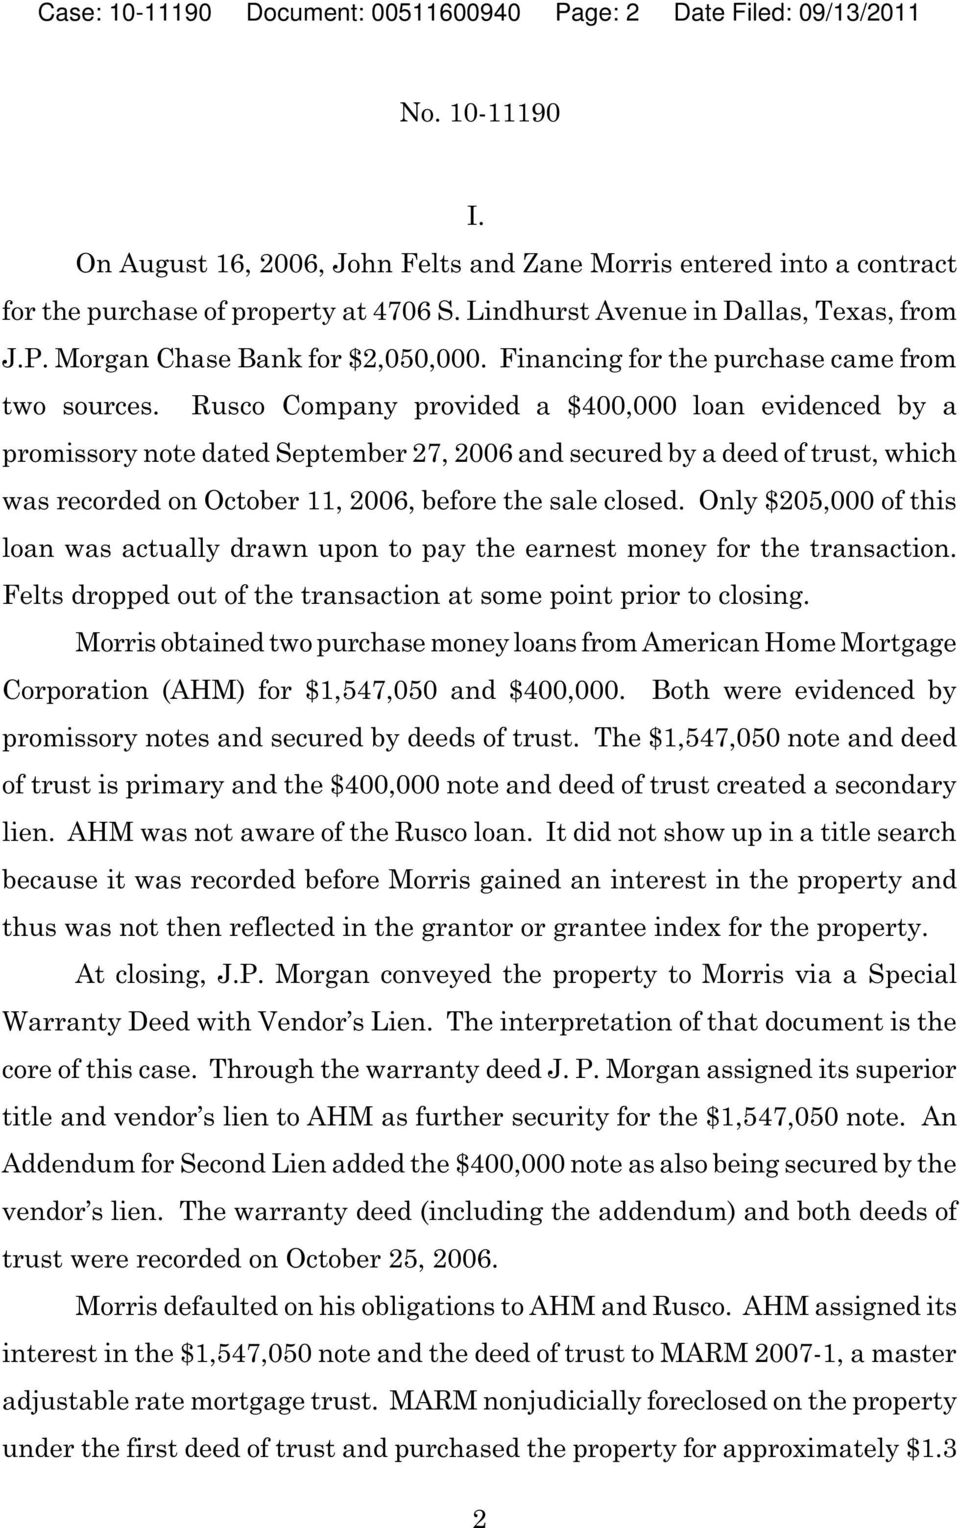 Rusco Company provided a $400,000 loan evidenced by a promissory note dated September 27, 2006 and secured by a deed of trust, which was recorded on October 11, 2006, before the sale closed.